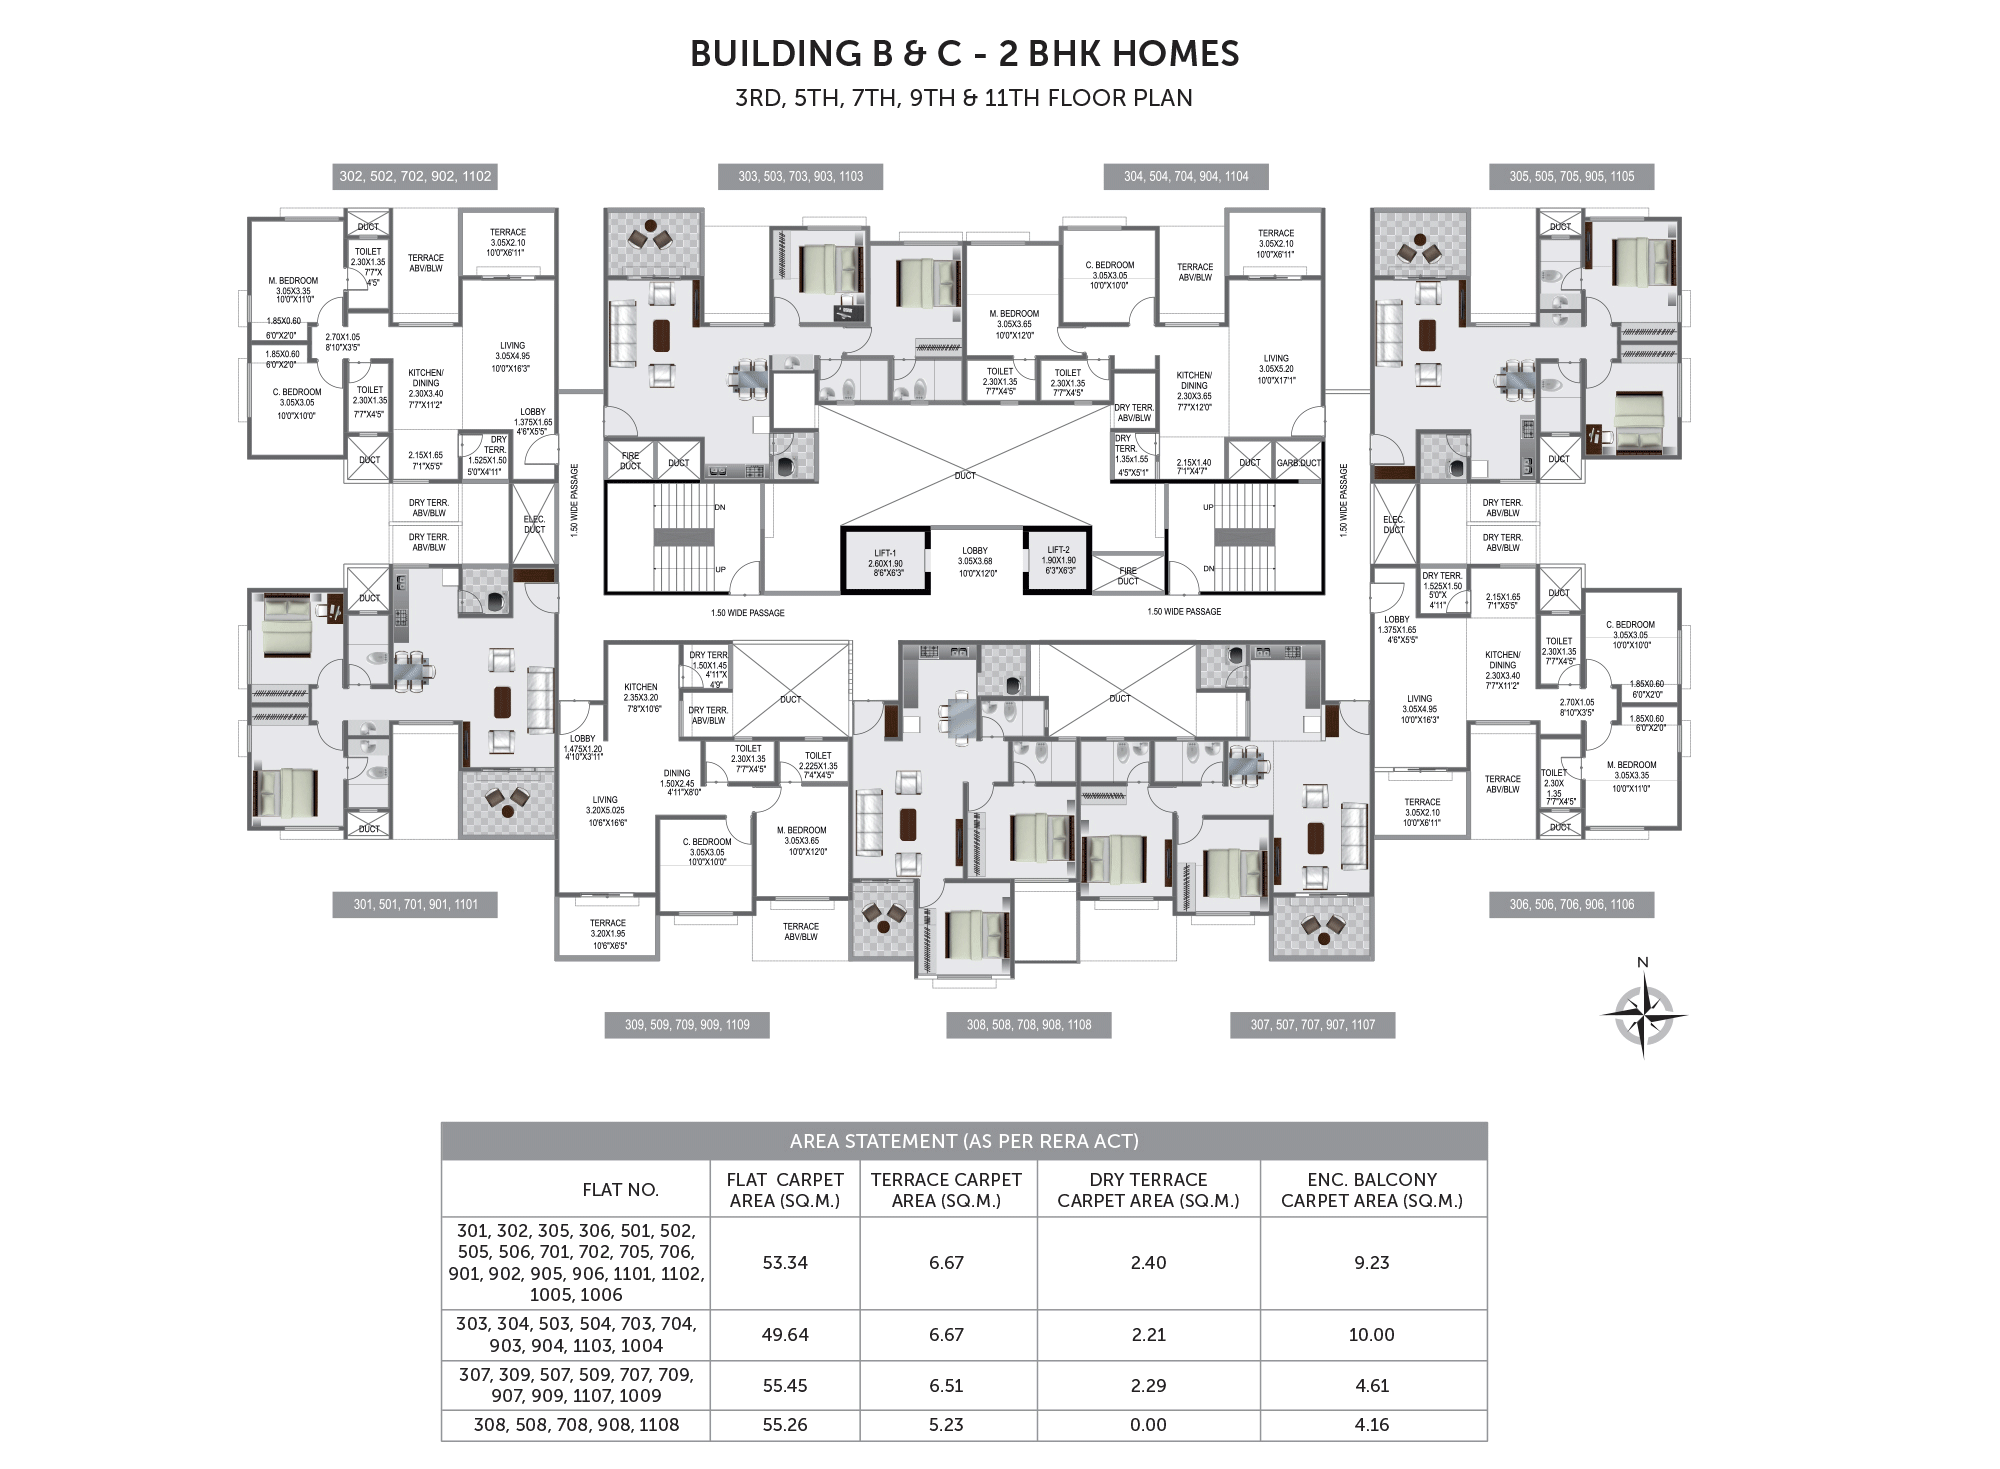 Pristine Prolife 3_Building B & C - 3RD, 5TH, 7TH, 9TH & 11TH FLOOR PLAN